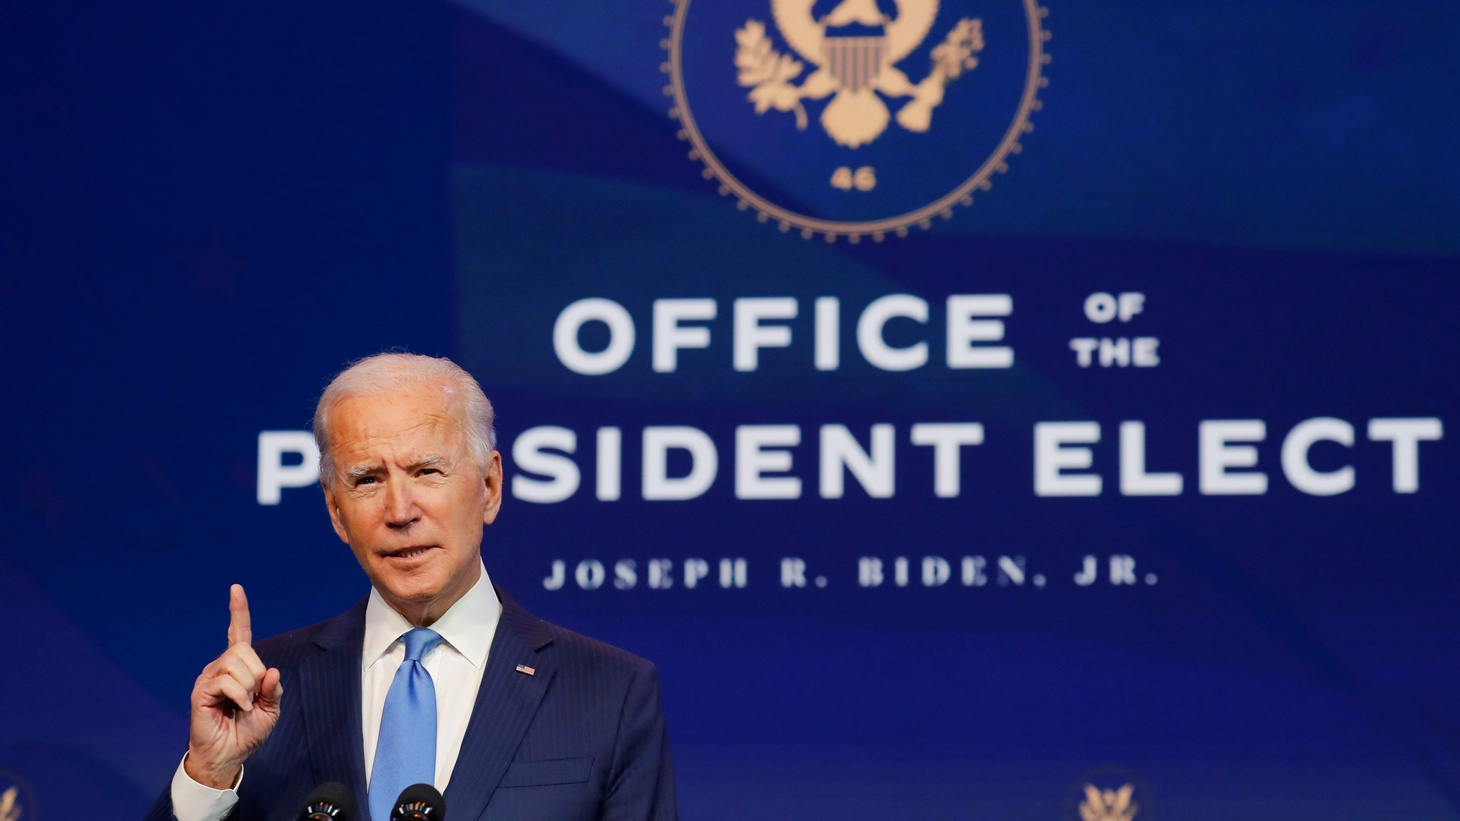 U.S. President-elect Joe Biden speaks to reporters as he announces more nominees and appointees during a news conference at his transition headquarters in Wilmington, Delaware, U.S., December 11, 2020.